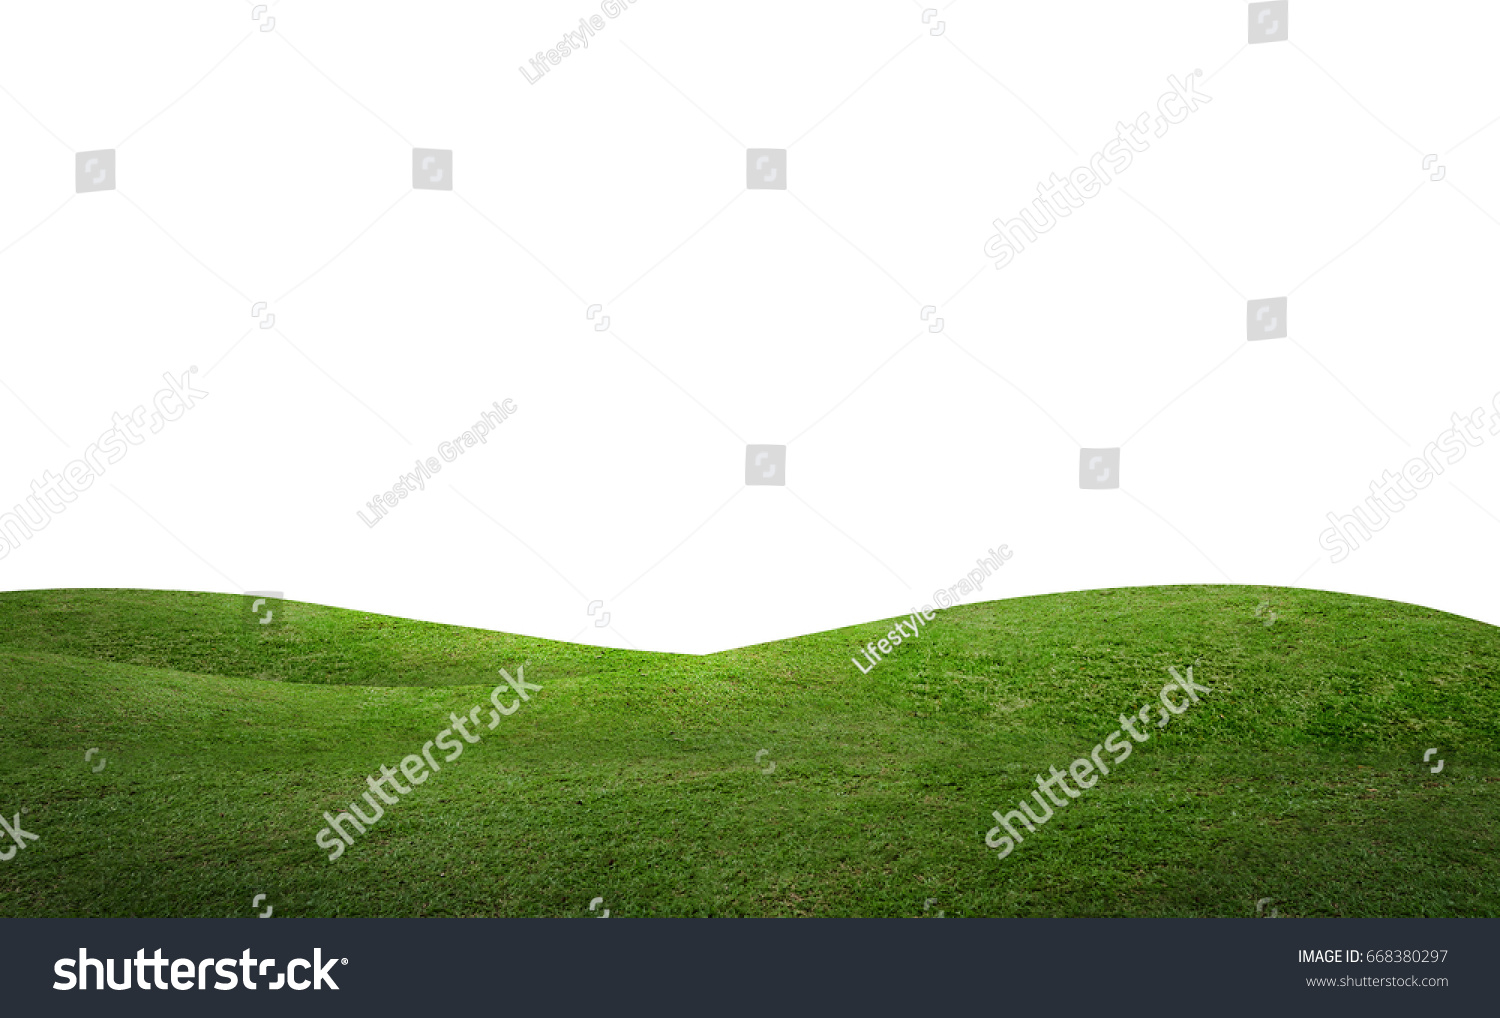 Green hill of grass field isolated on white background with clipping path. #668380297